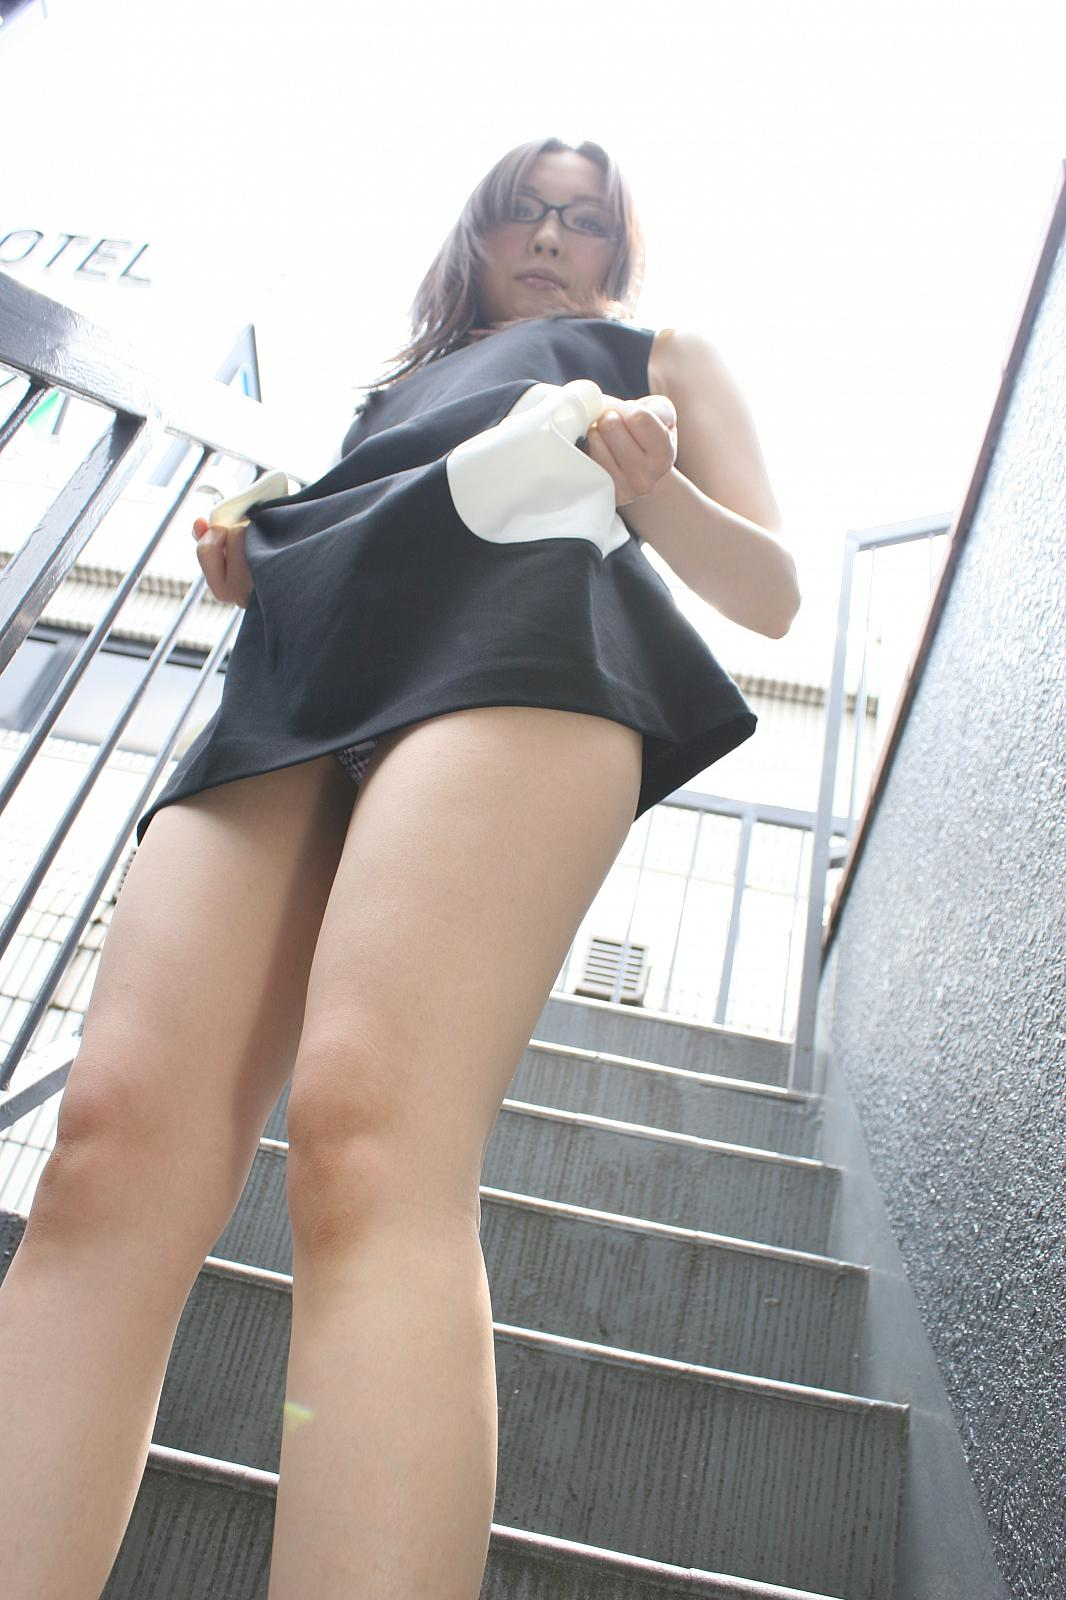 Time for Some Hot Japanese Milf Upskirt Action